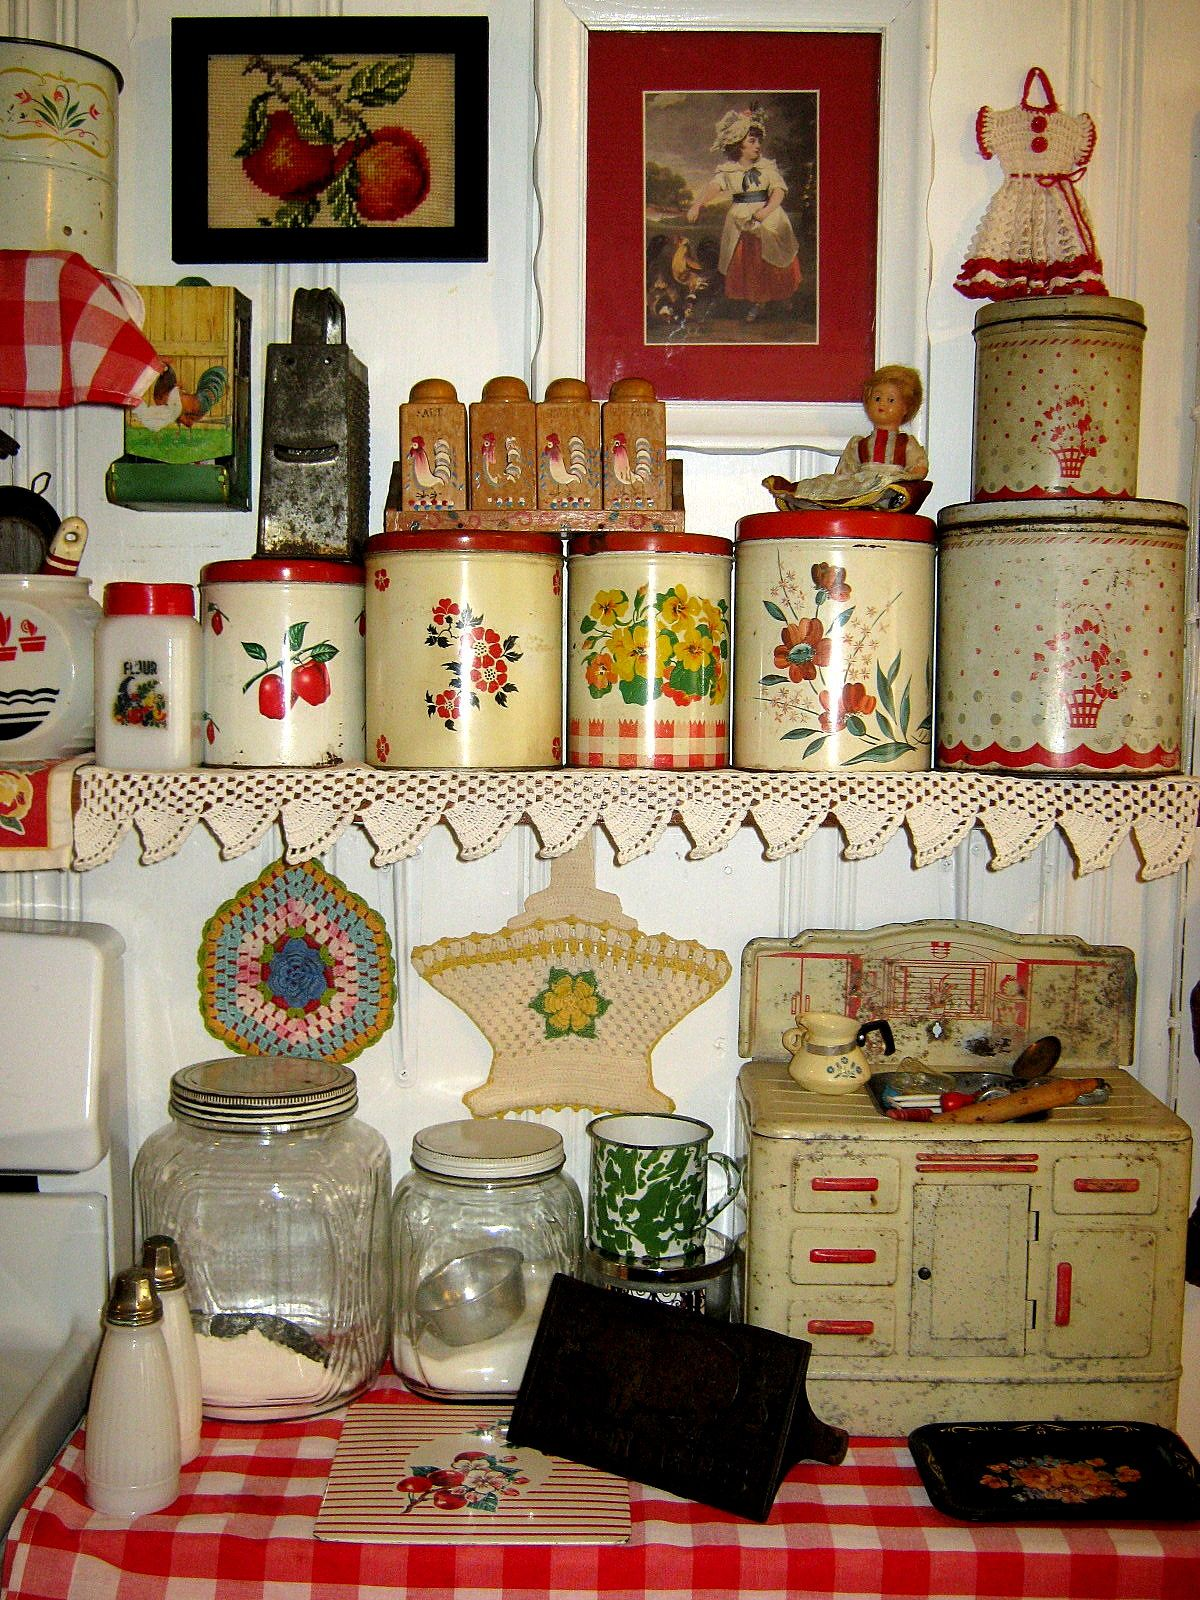 kitchen decor collections nice canister collection in this very cute red and white kitchen vintage collections 3742